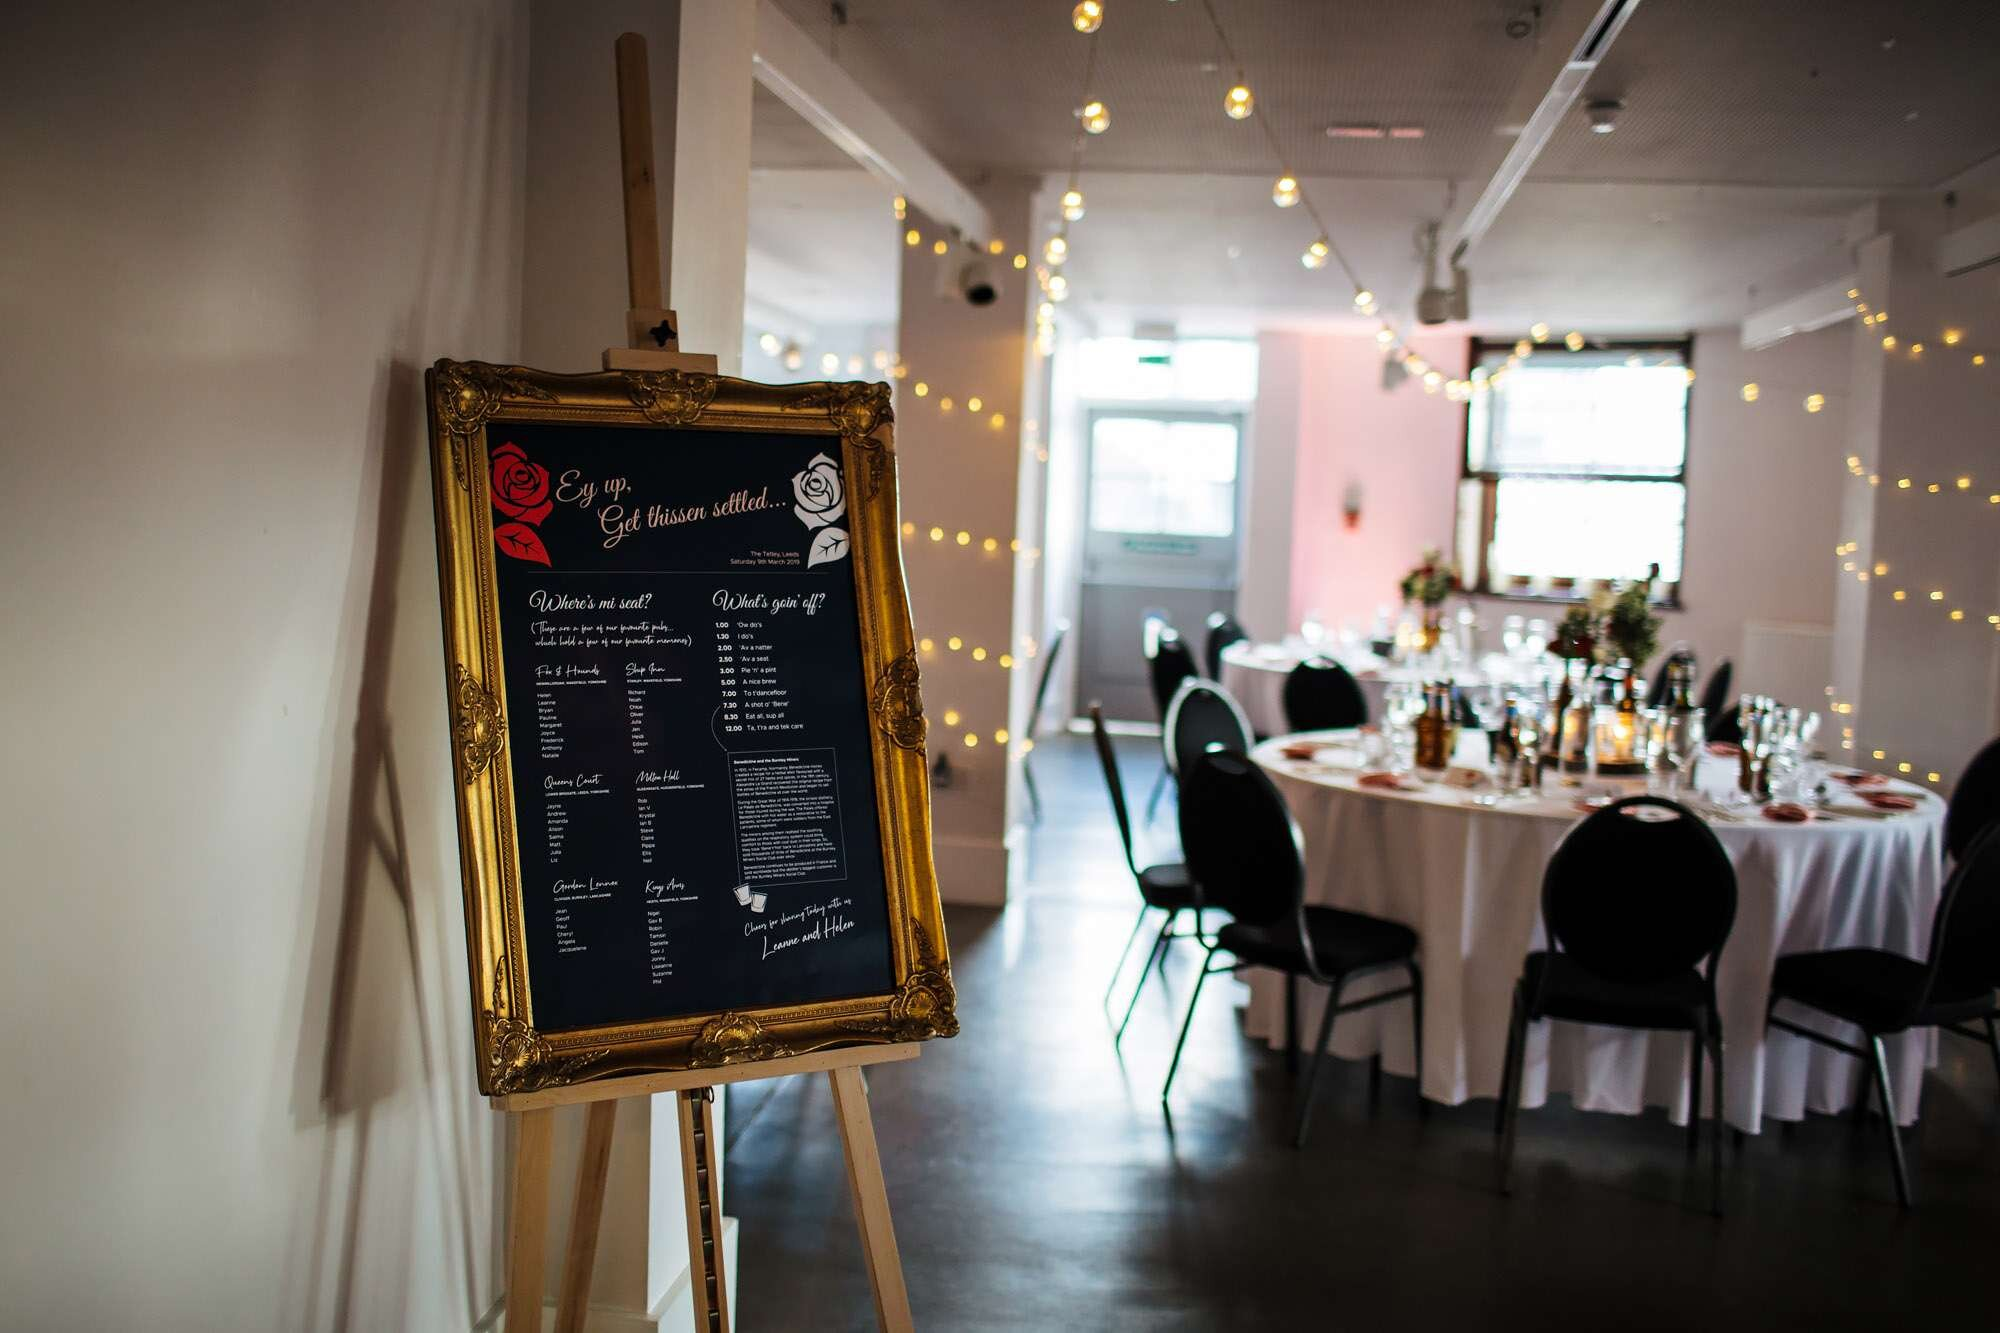 Seating plan for a wedding at The Tetley Leeds